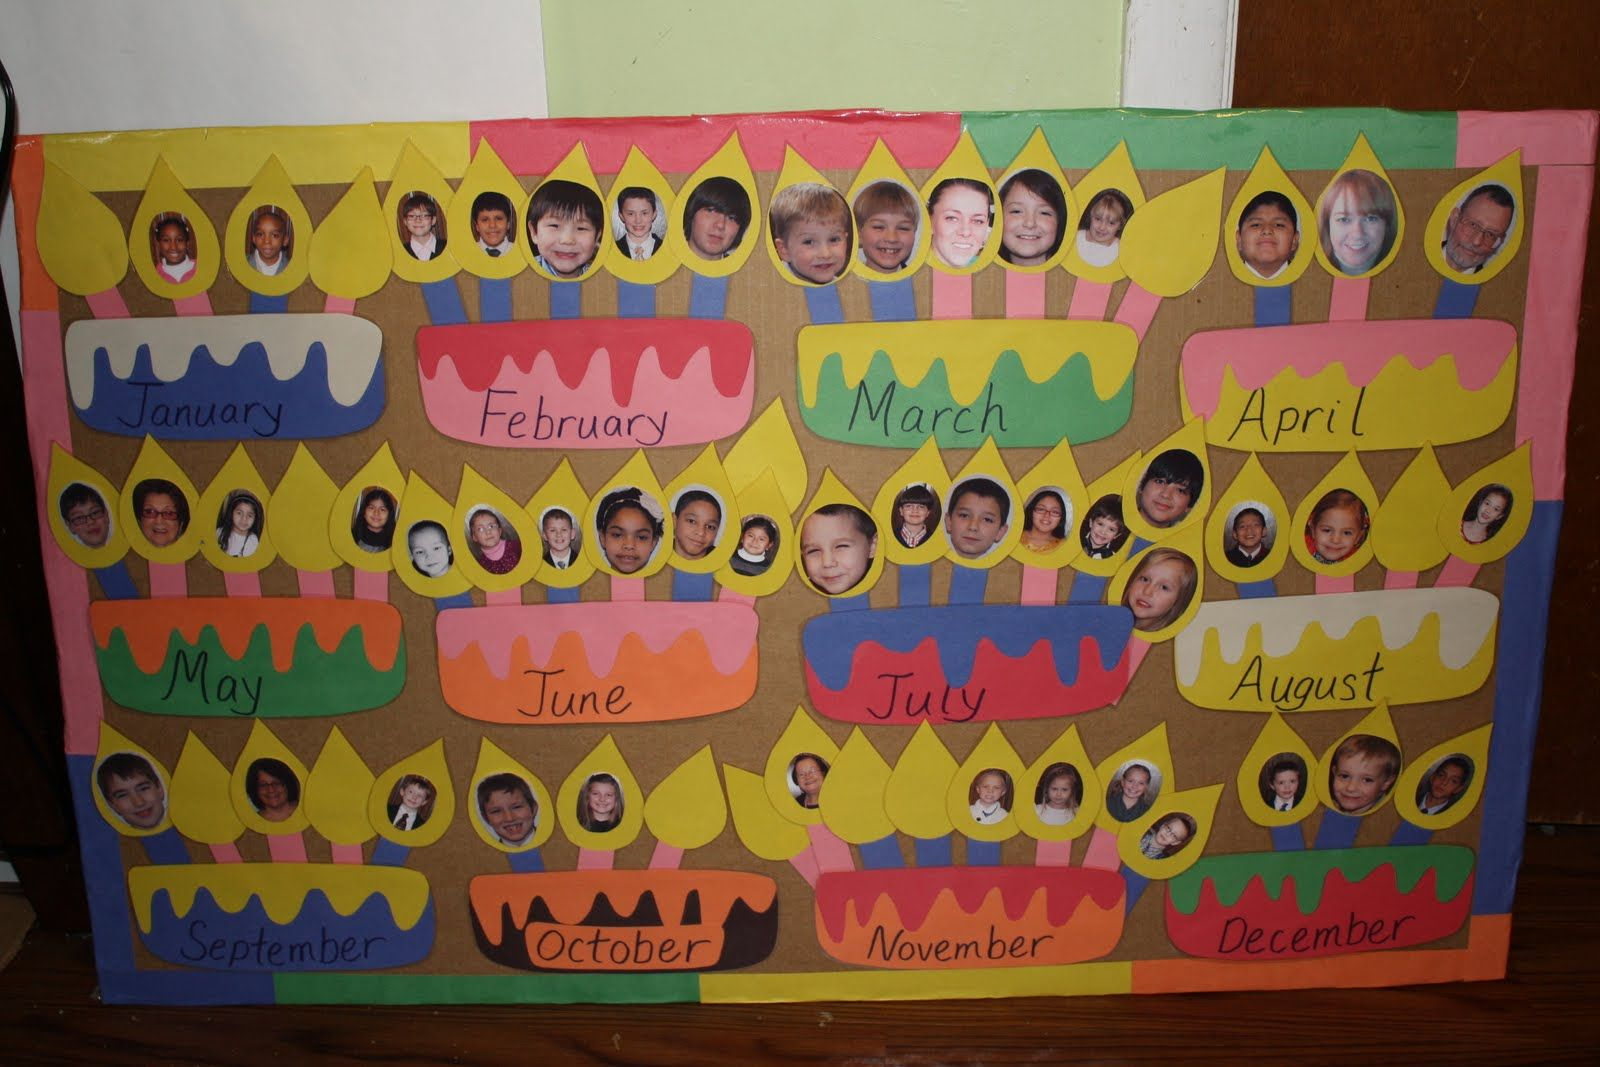 Classroom Decoration Happy Birthday ~ A c da cd f ad dafd g